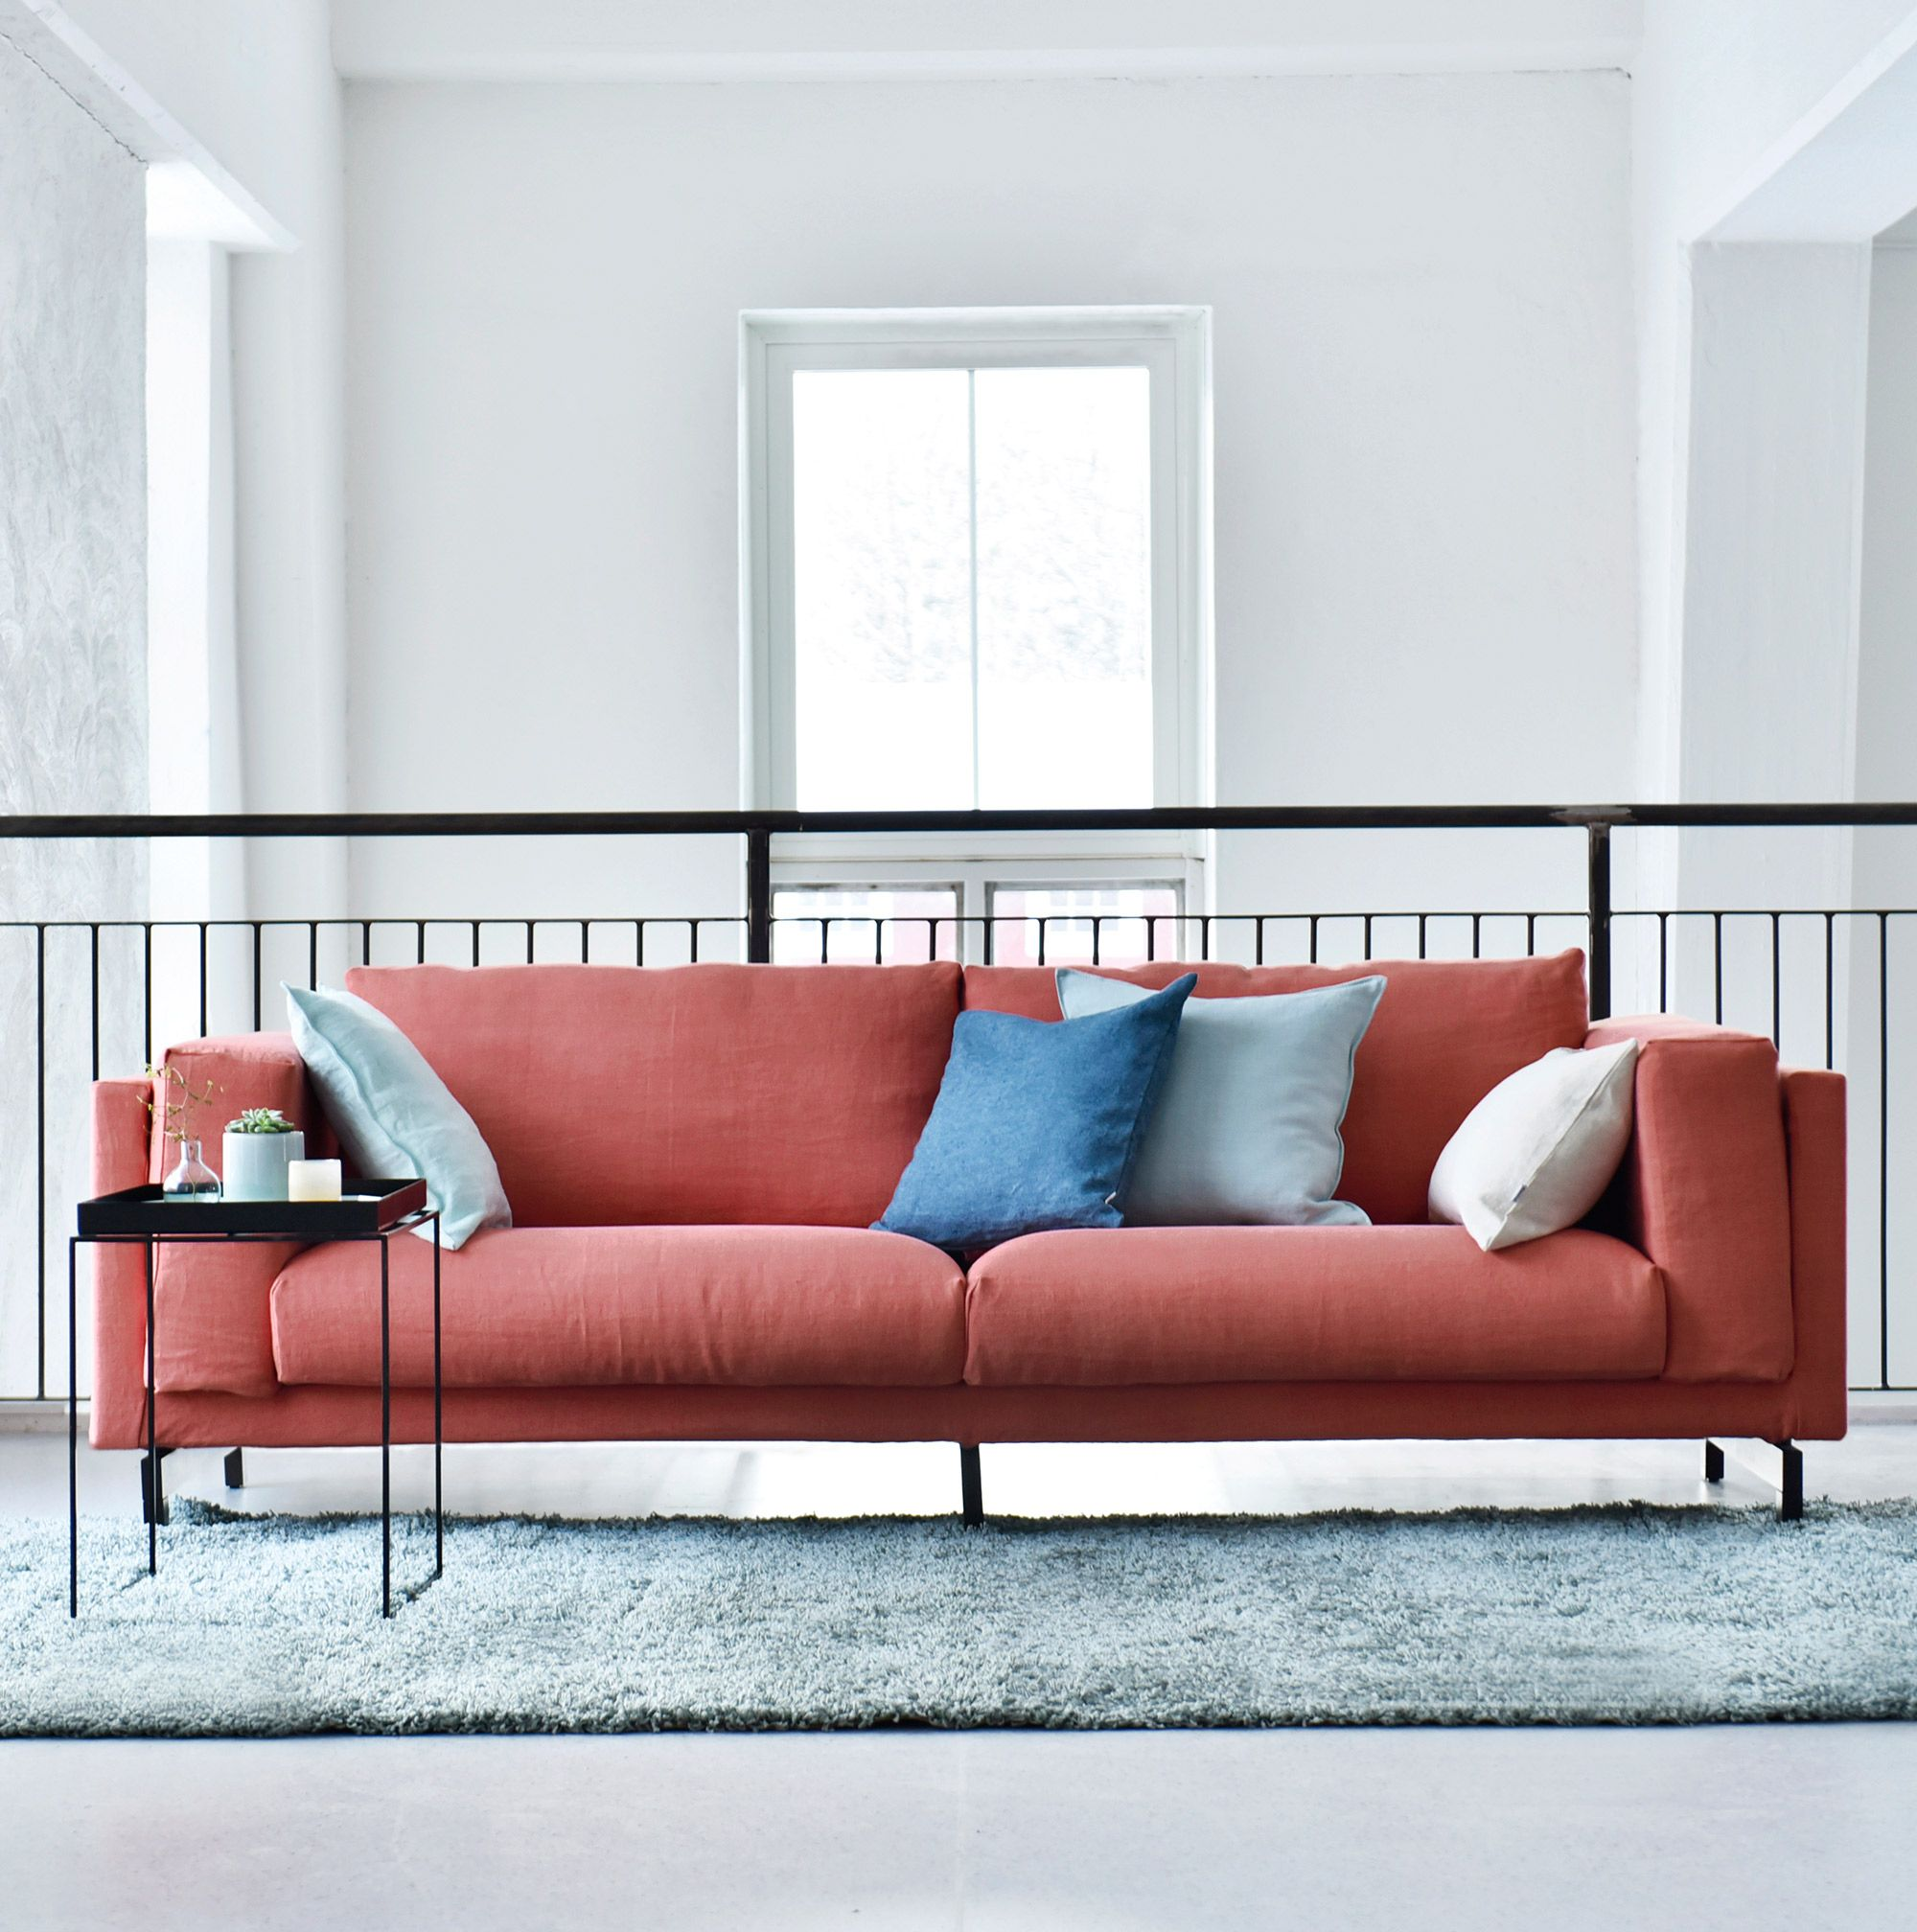 Coral Red Linen Sofa | Industrial Style Open Plan Loft With Huge Windows |  IKEA Nockeby